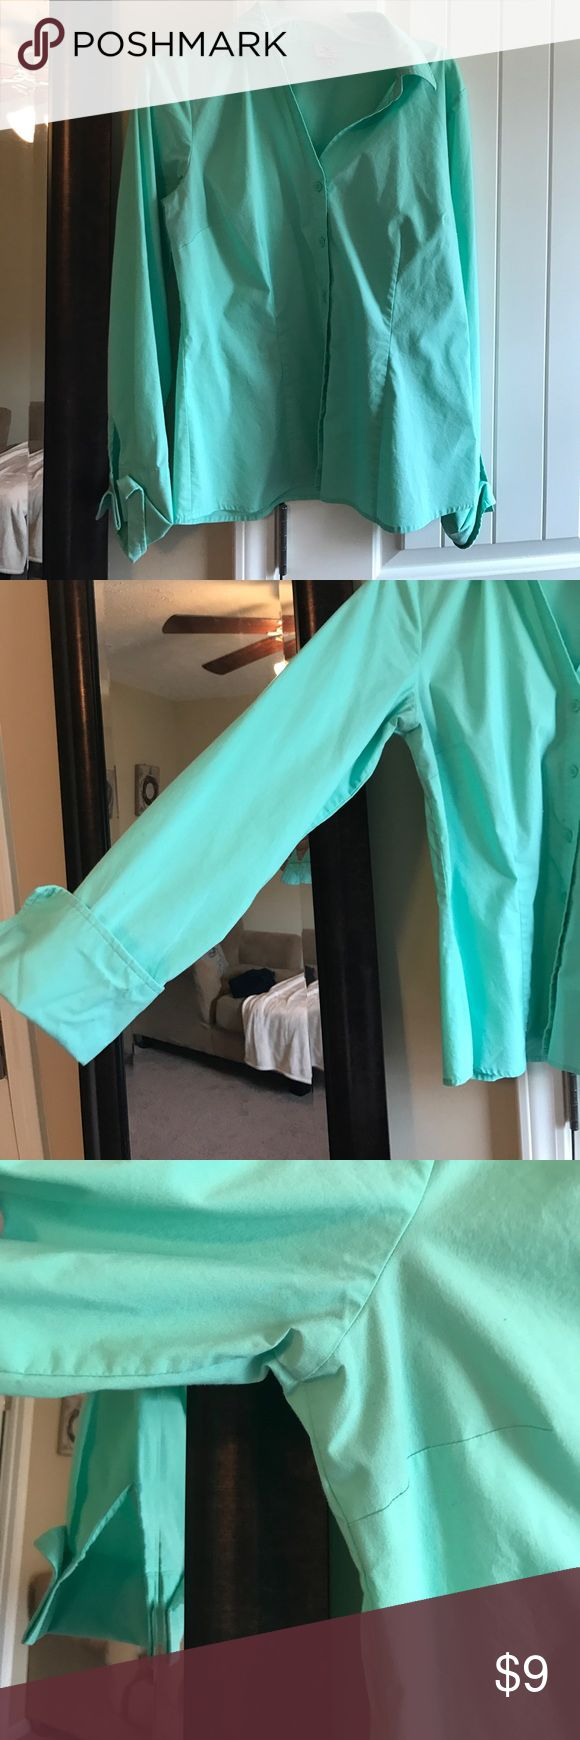 Mint Button Up! Great way to add a splash of color to any work outfit! Size 12 - M/L Worthington Tops Button Down Shirts